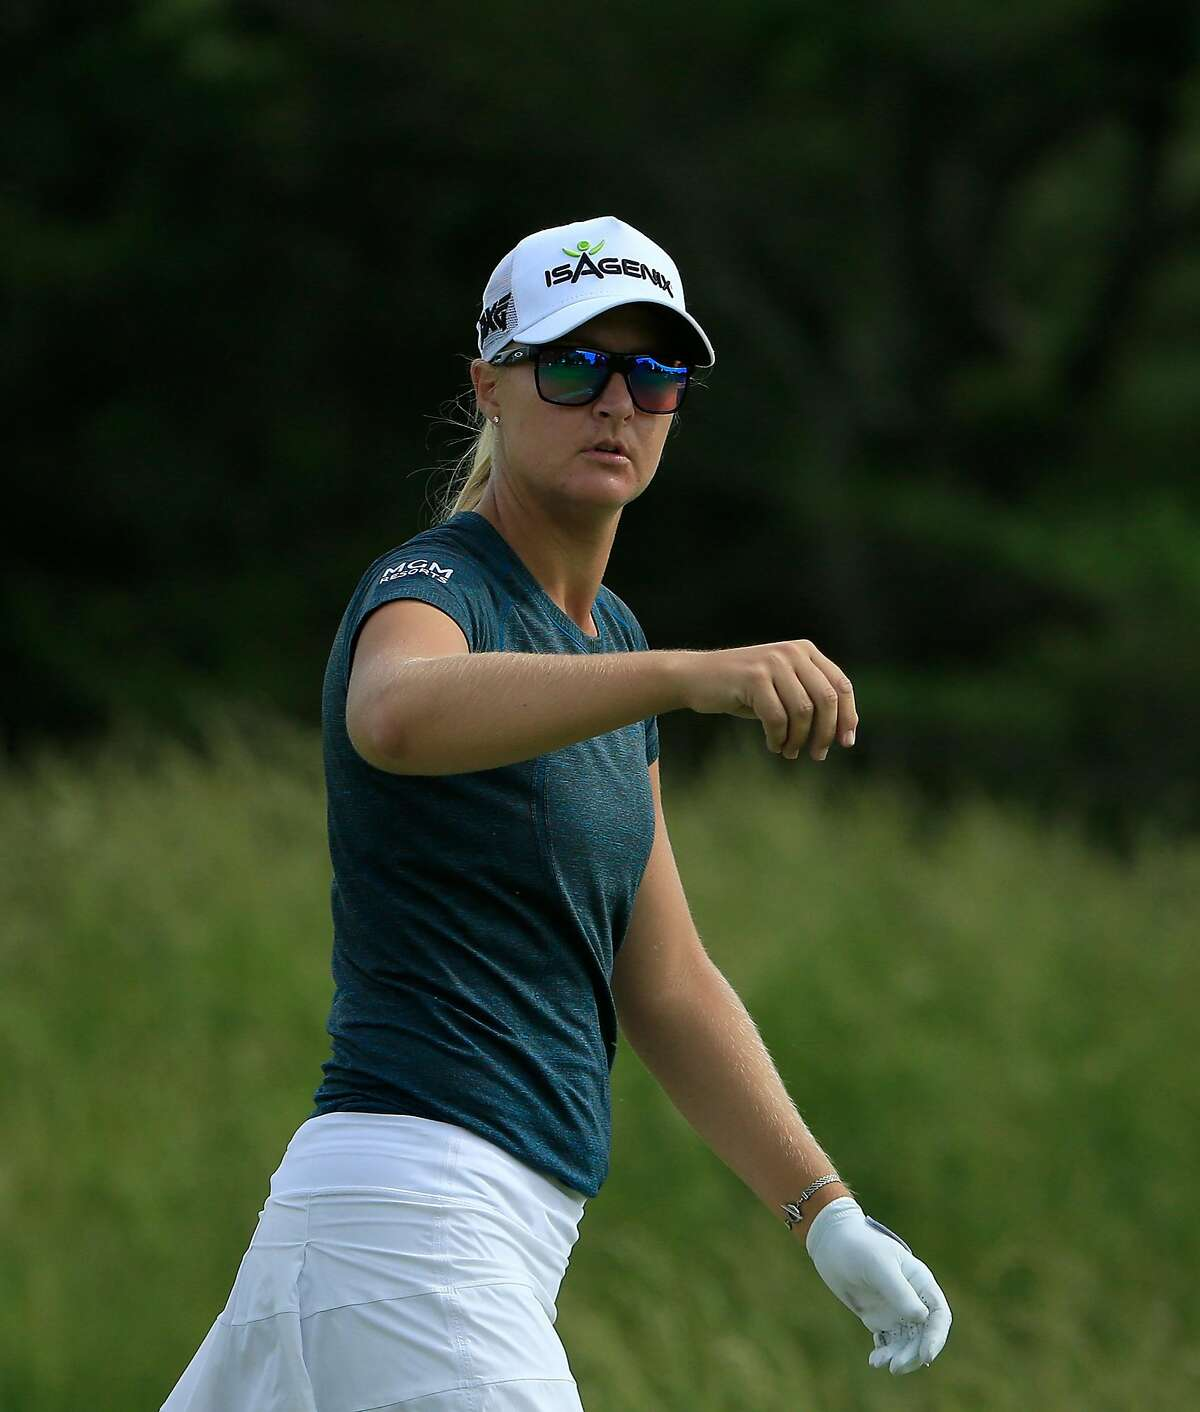 GALLOWAY, NJ - JUNE 08: Anna Nordqvist of Sweden looks on during the first round of the ShopRite LPGA Classic Presented by Acer on the Bay Course at Stockton Seaview Hotel and Golf Club on June 8, 2018 in Galloway, New Jersey. (Photo by Michael Cohen/Getty Images)